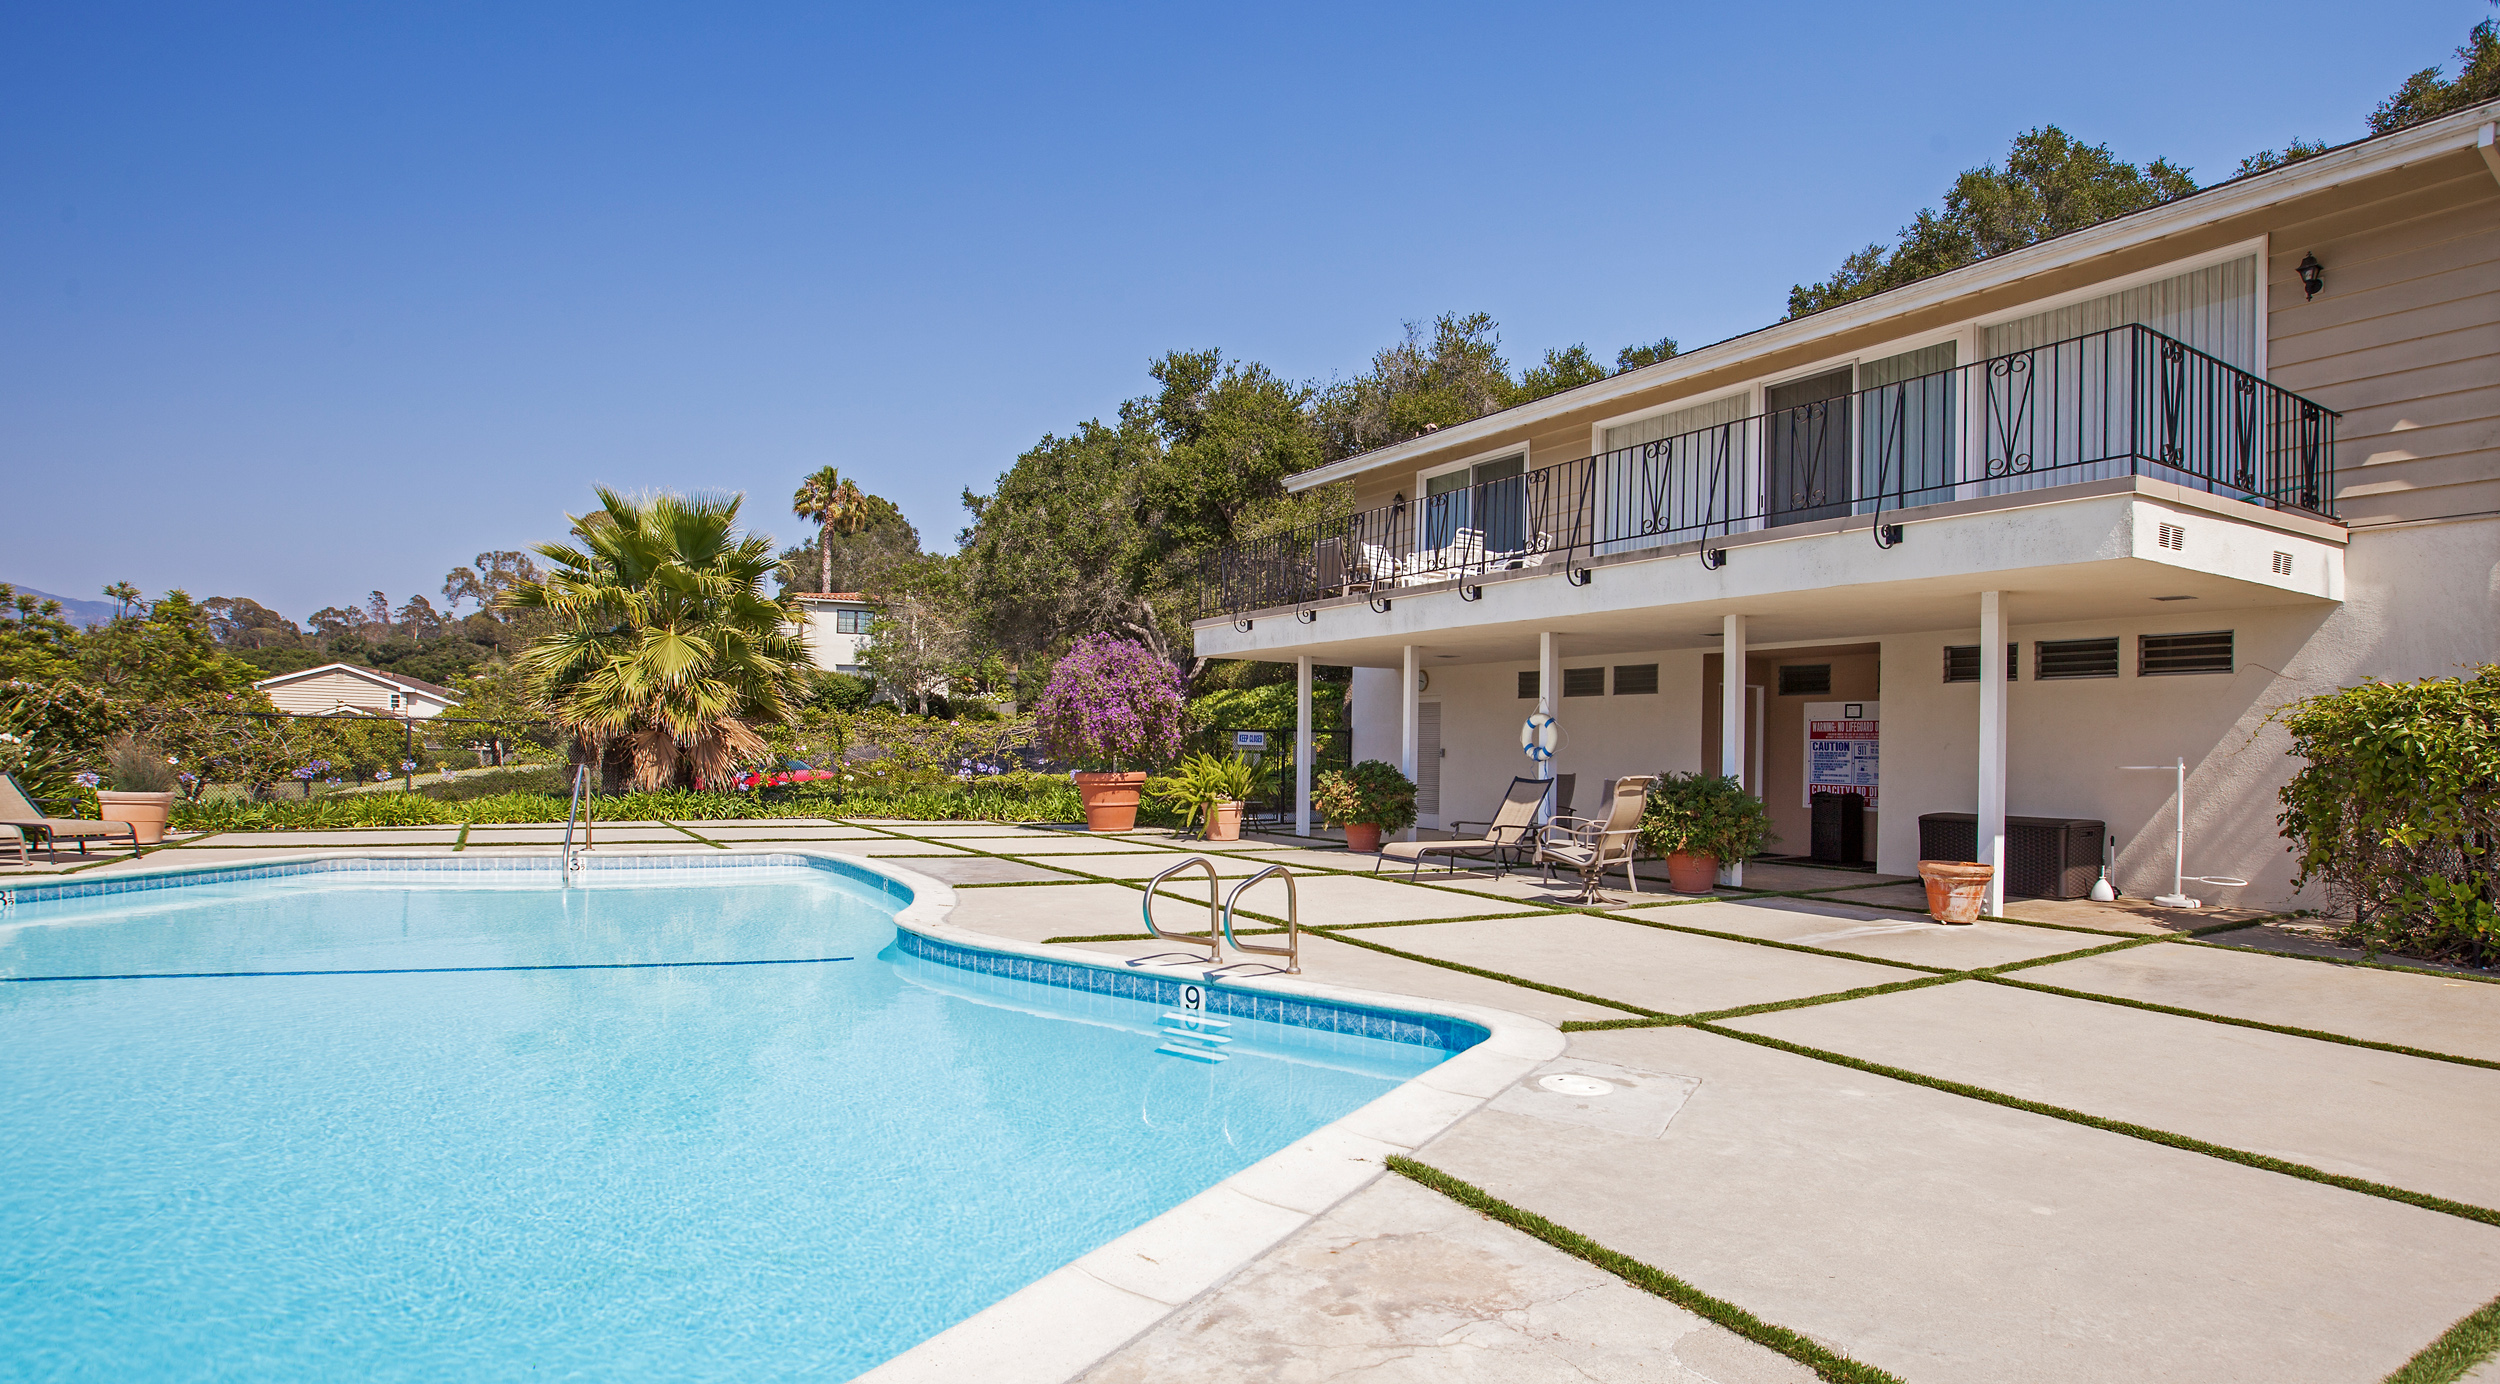 Recently Sold Homes In Carpinteria Ca